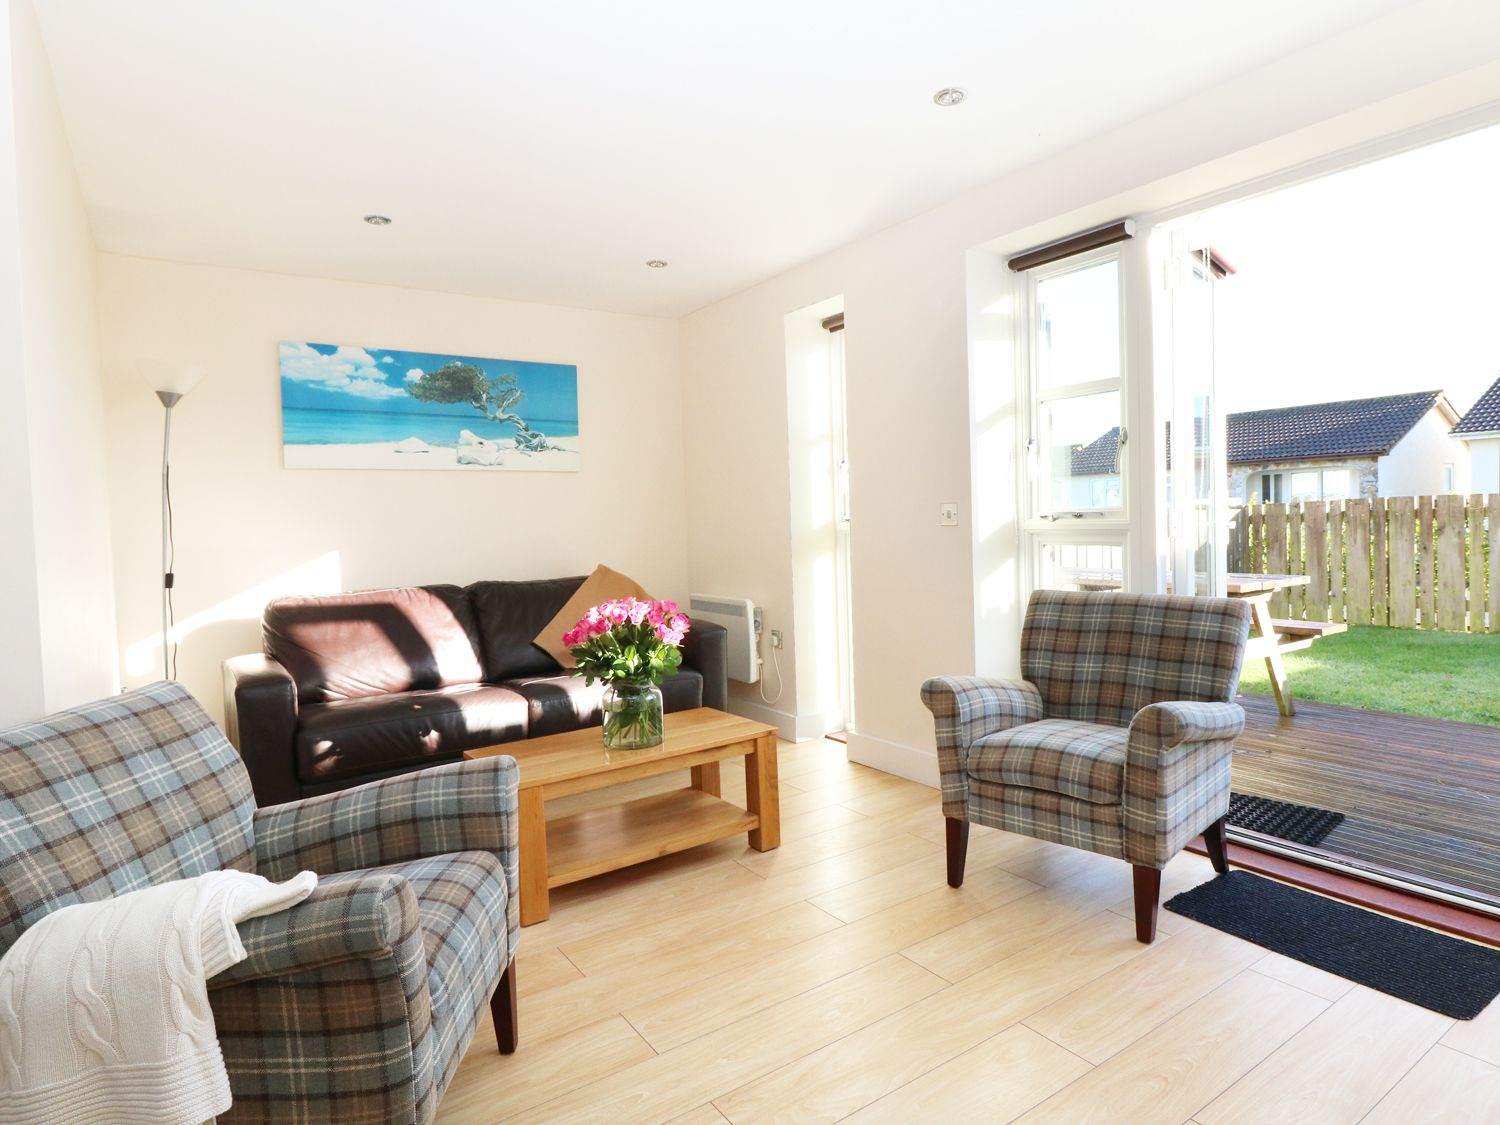 19 Bay Retreat Villas in St Merryn near Padstow - sleeps 6 people